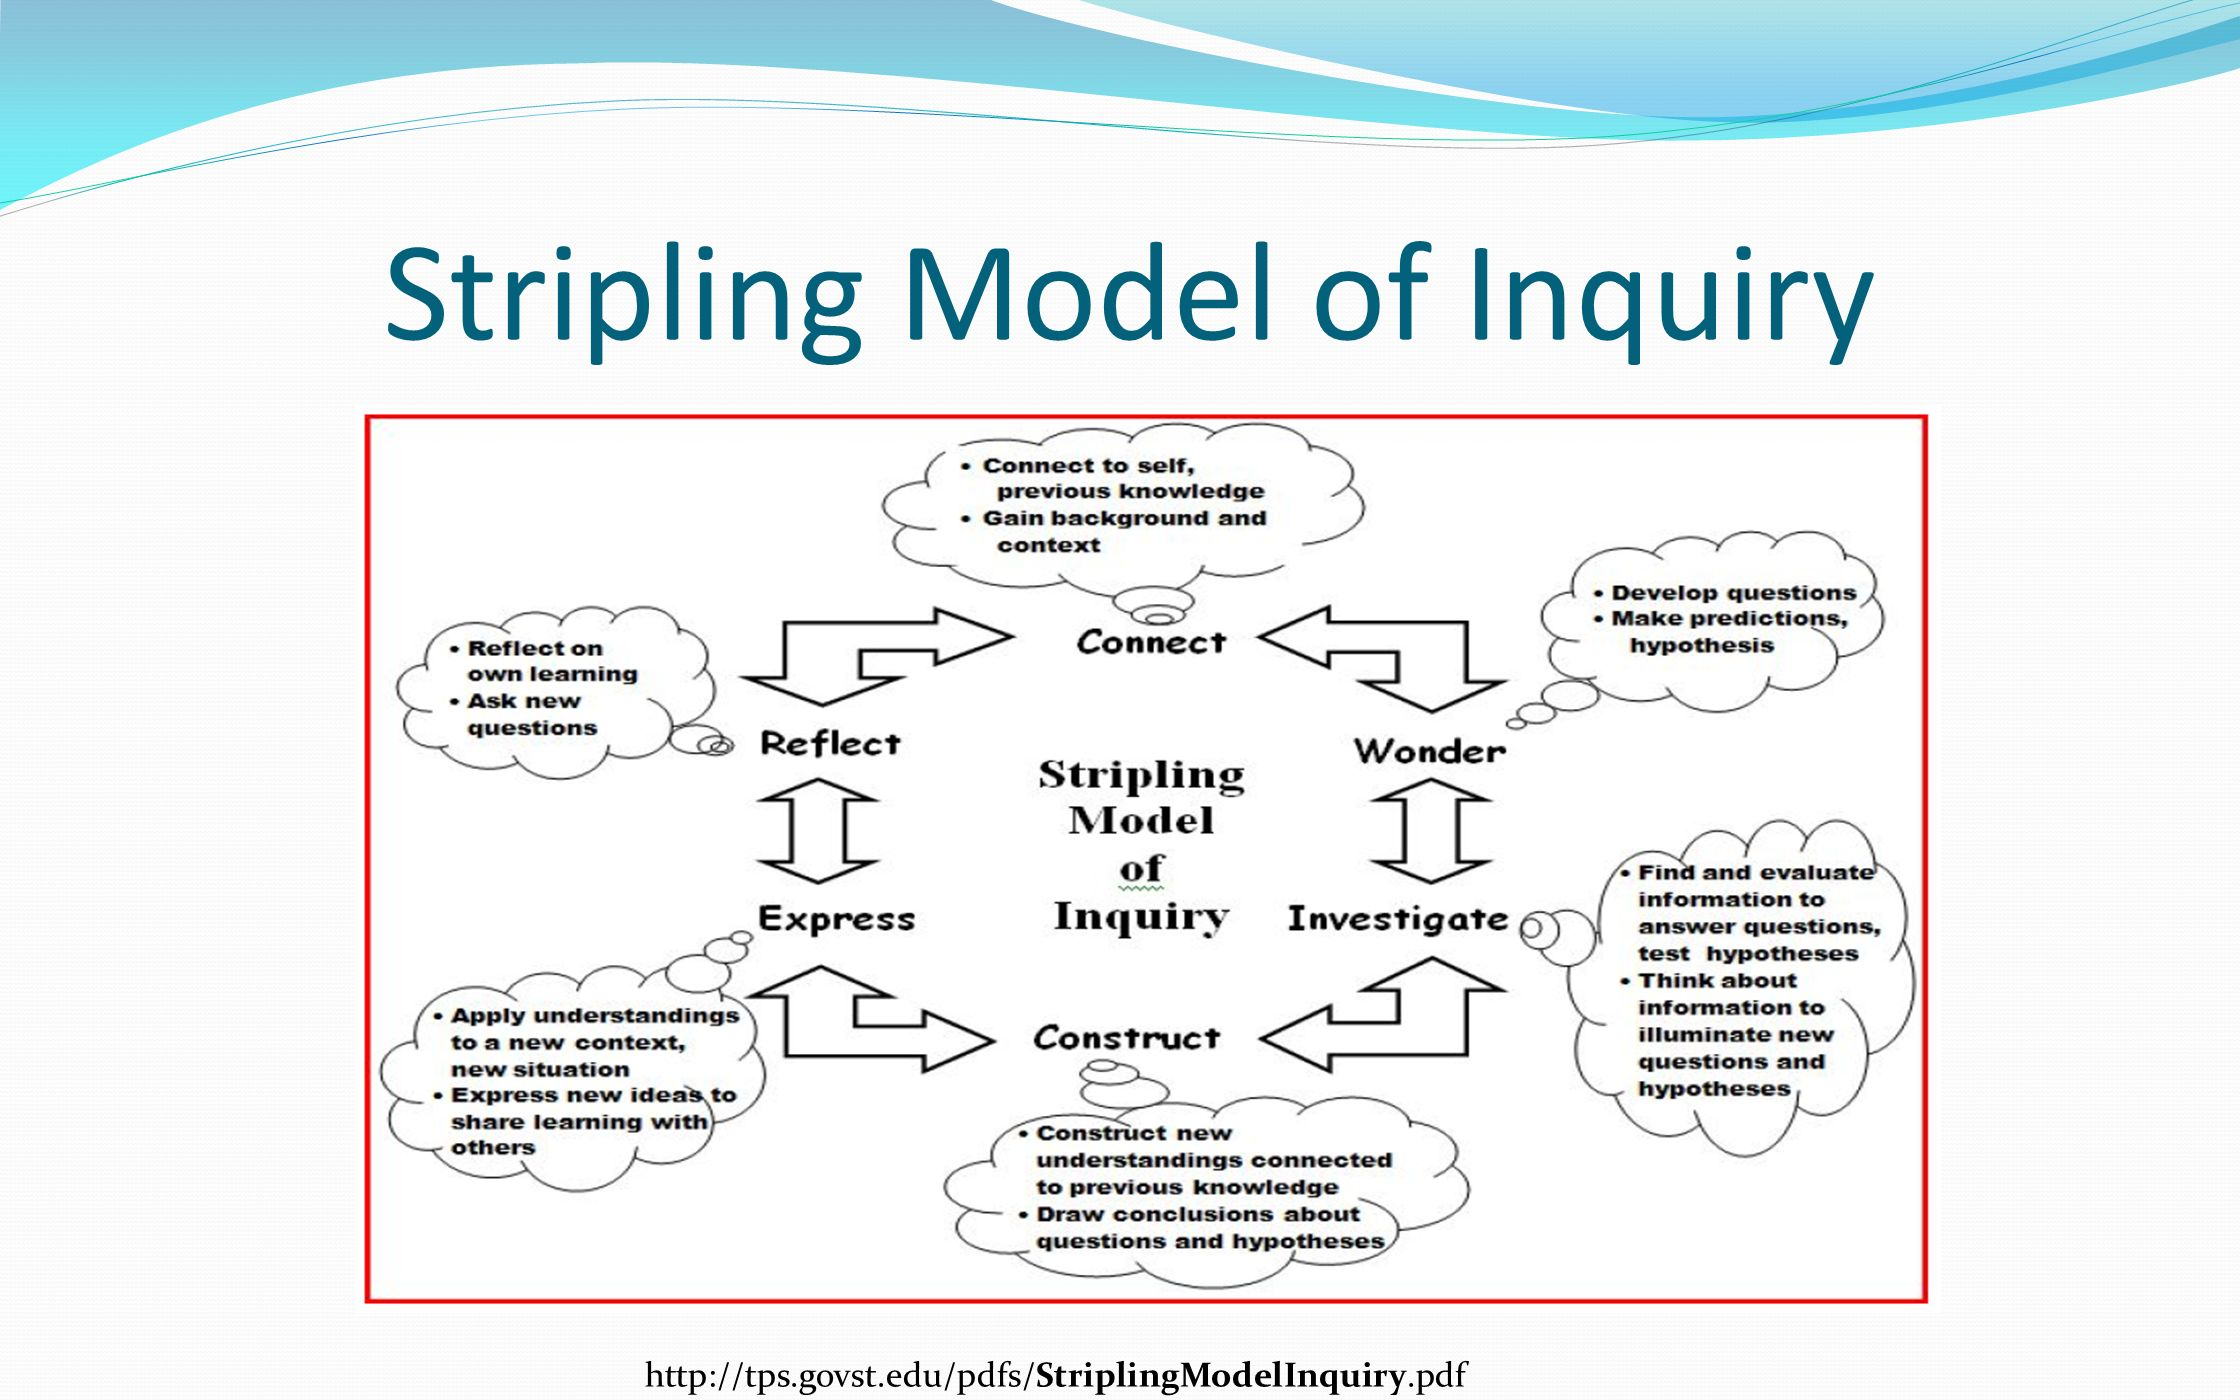 Stripling Model of Inquiry